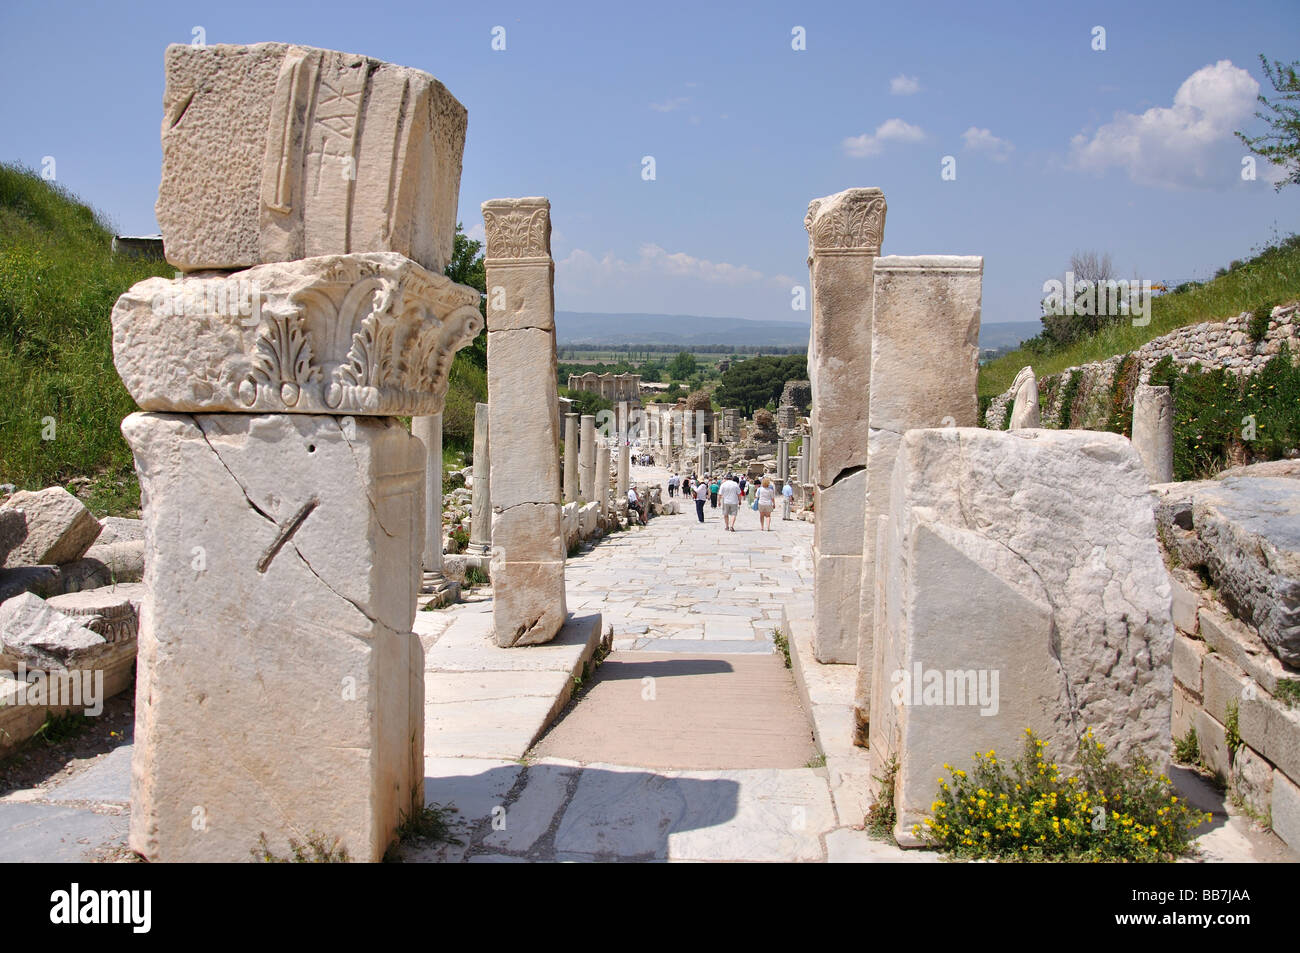 Gate of Hercules, Ancient City of Ephesus, Selcuk, Izmir Province, Turkey - Stock Image